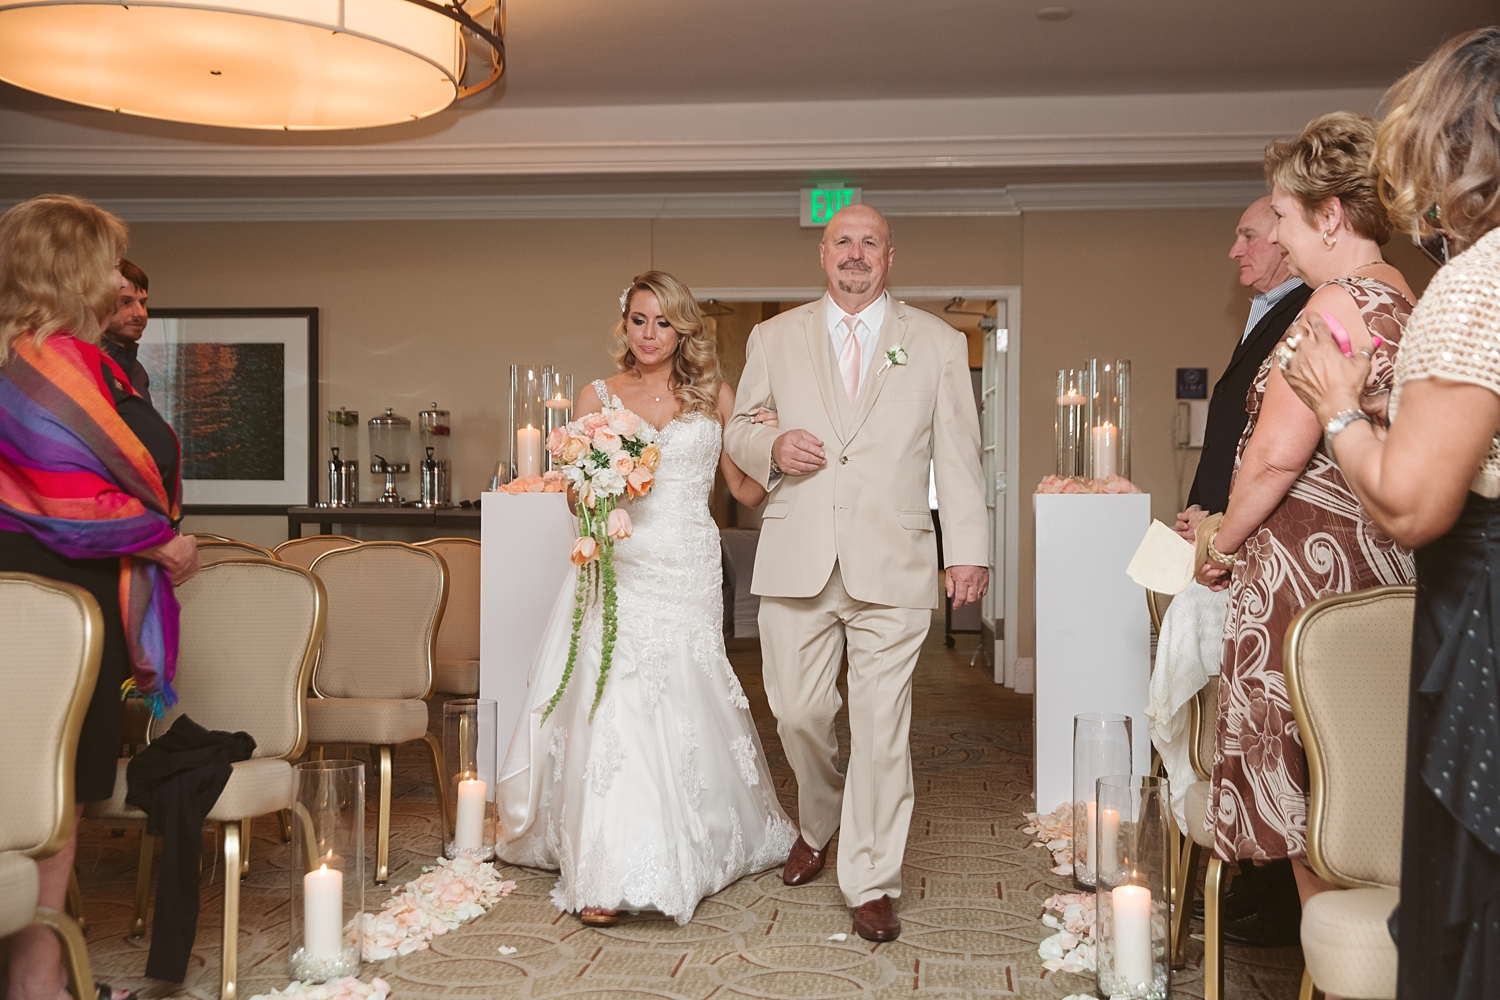 st_pete_wedding_photographer__0359.jpg